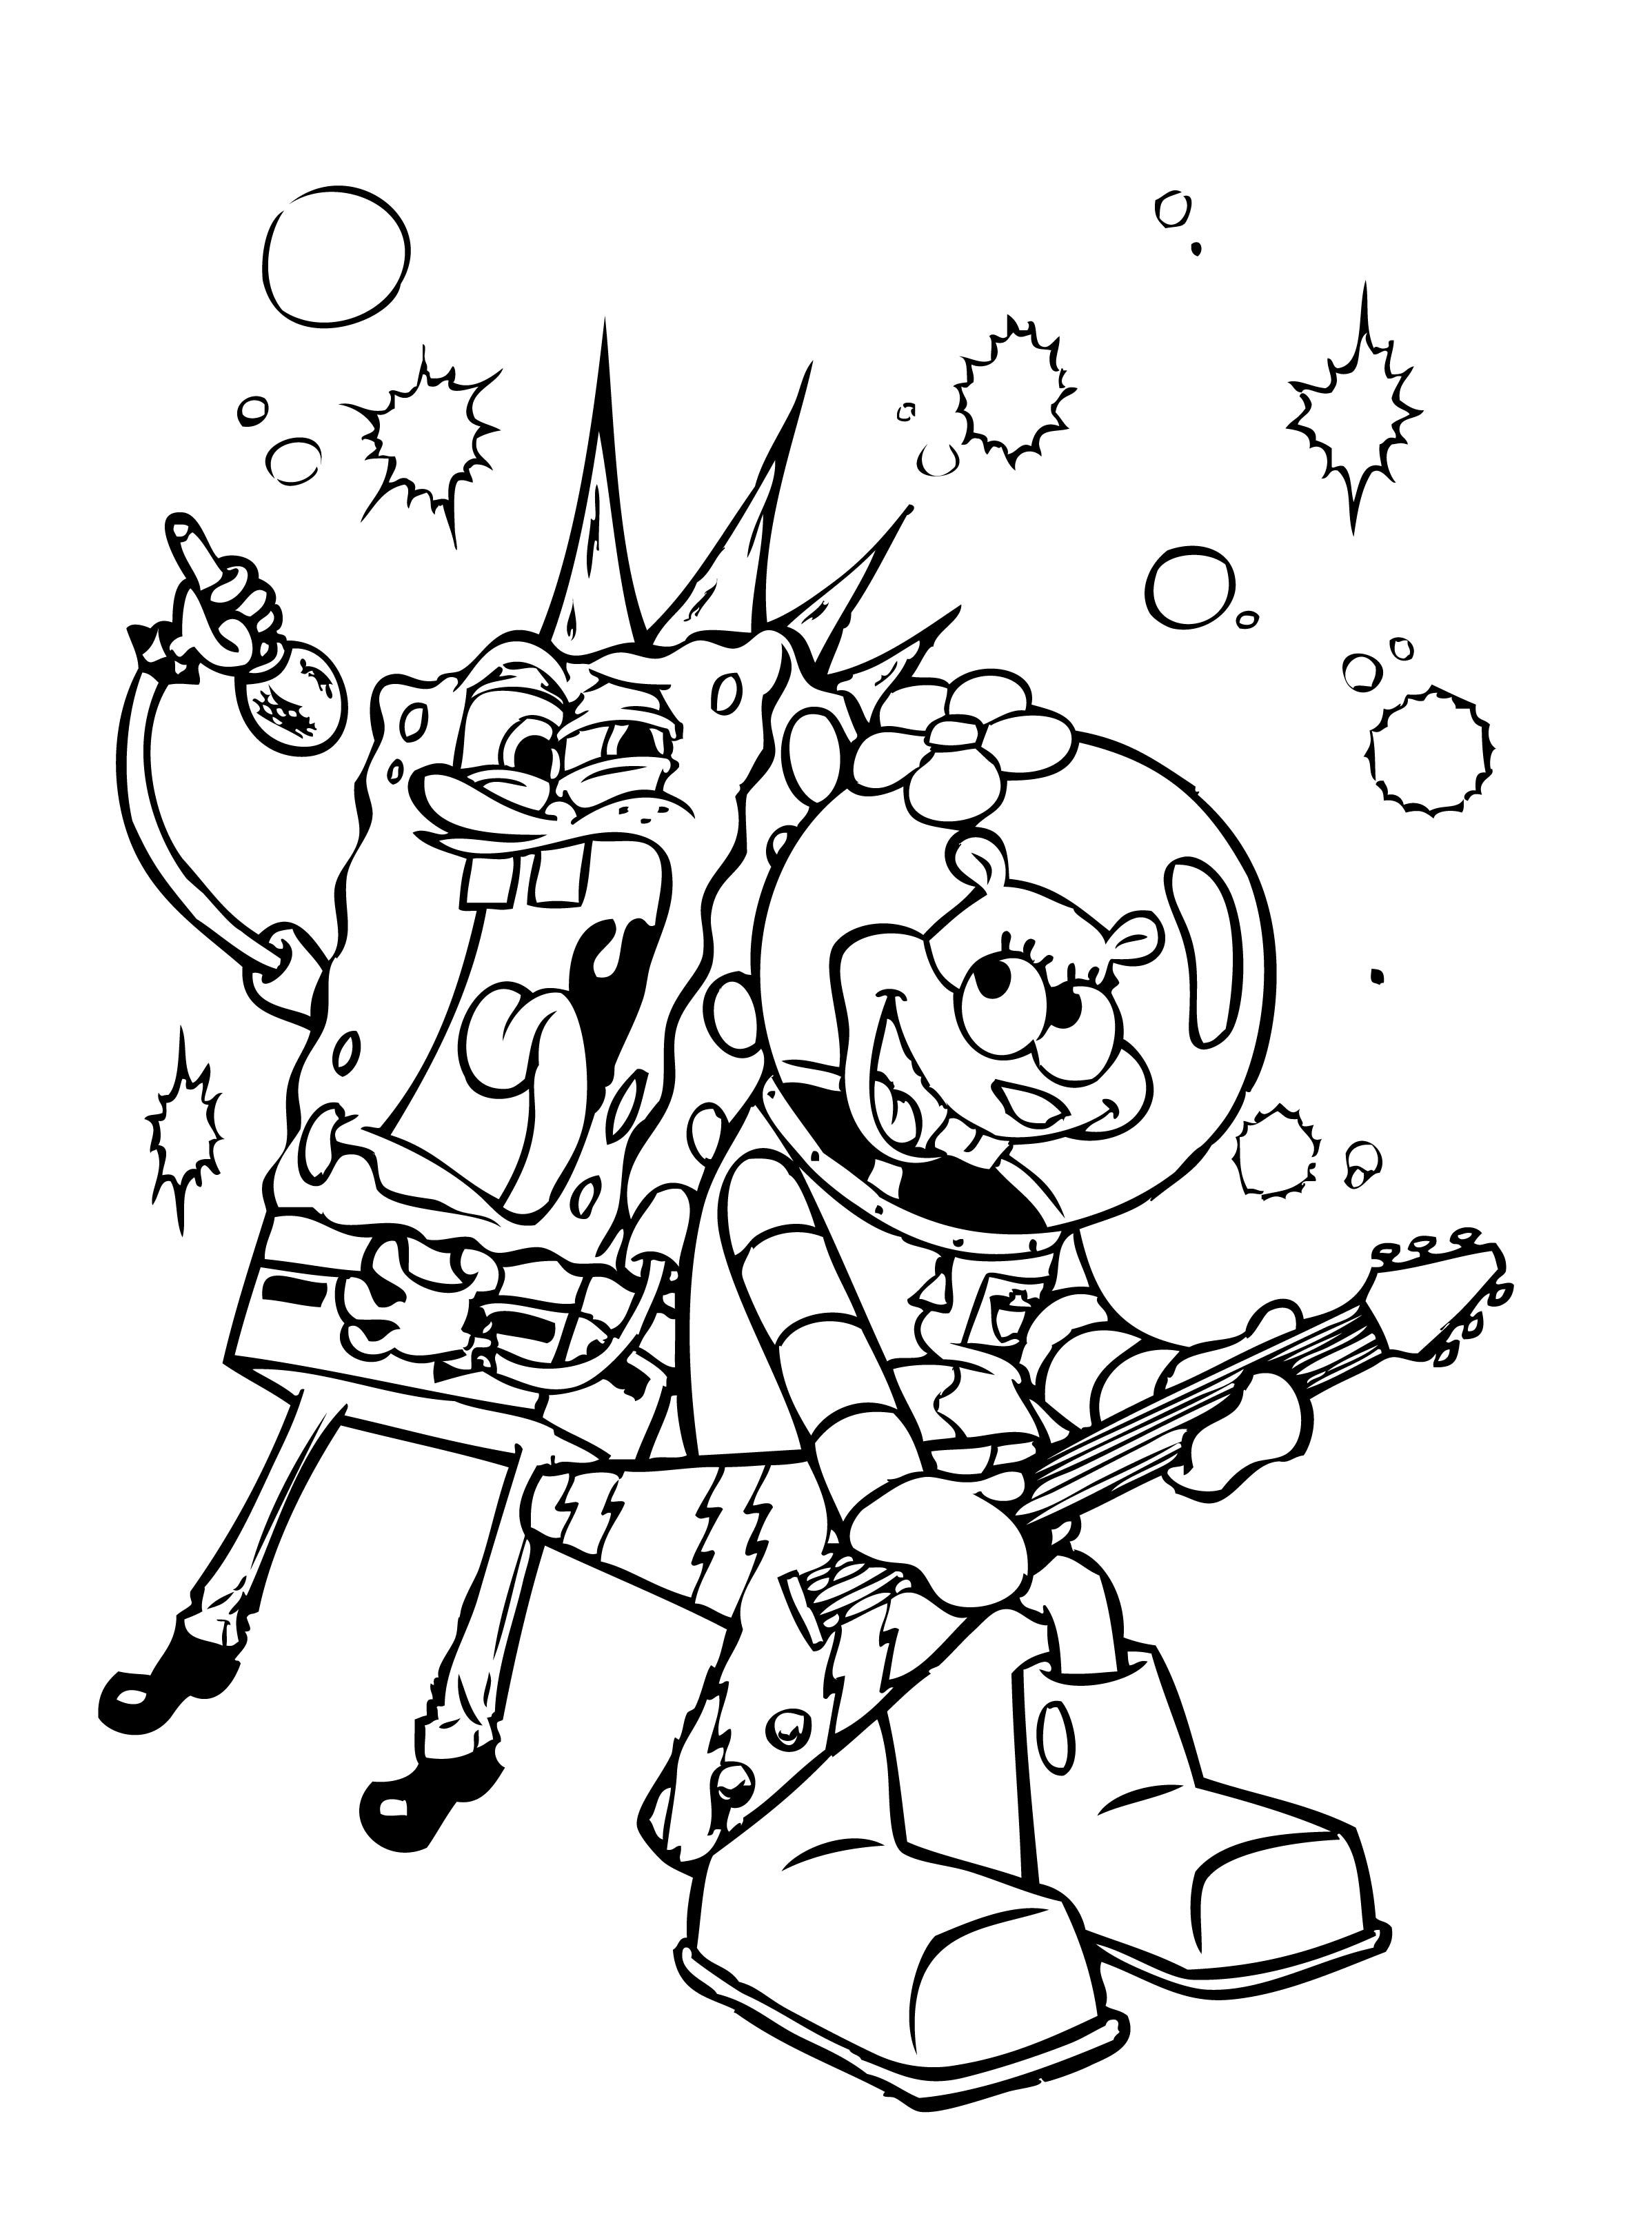 Spongebob Coloring Pages Printable Texas Life